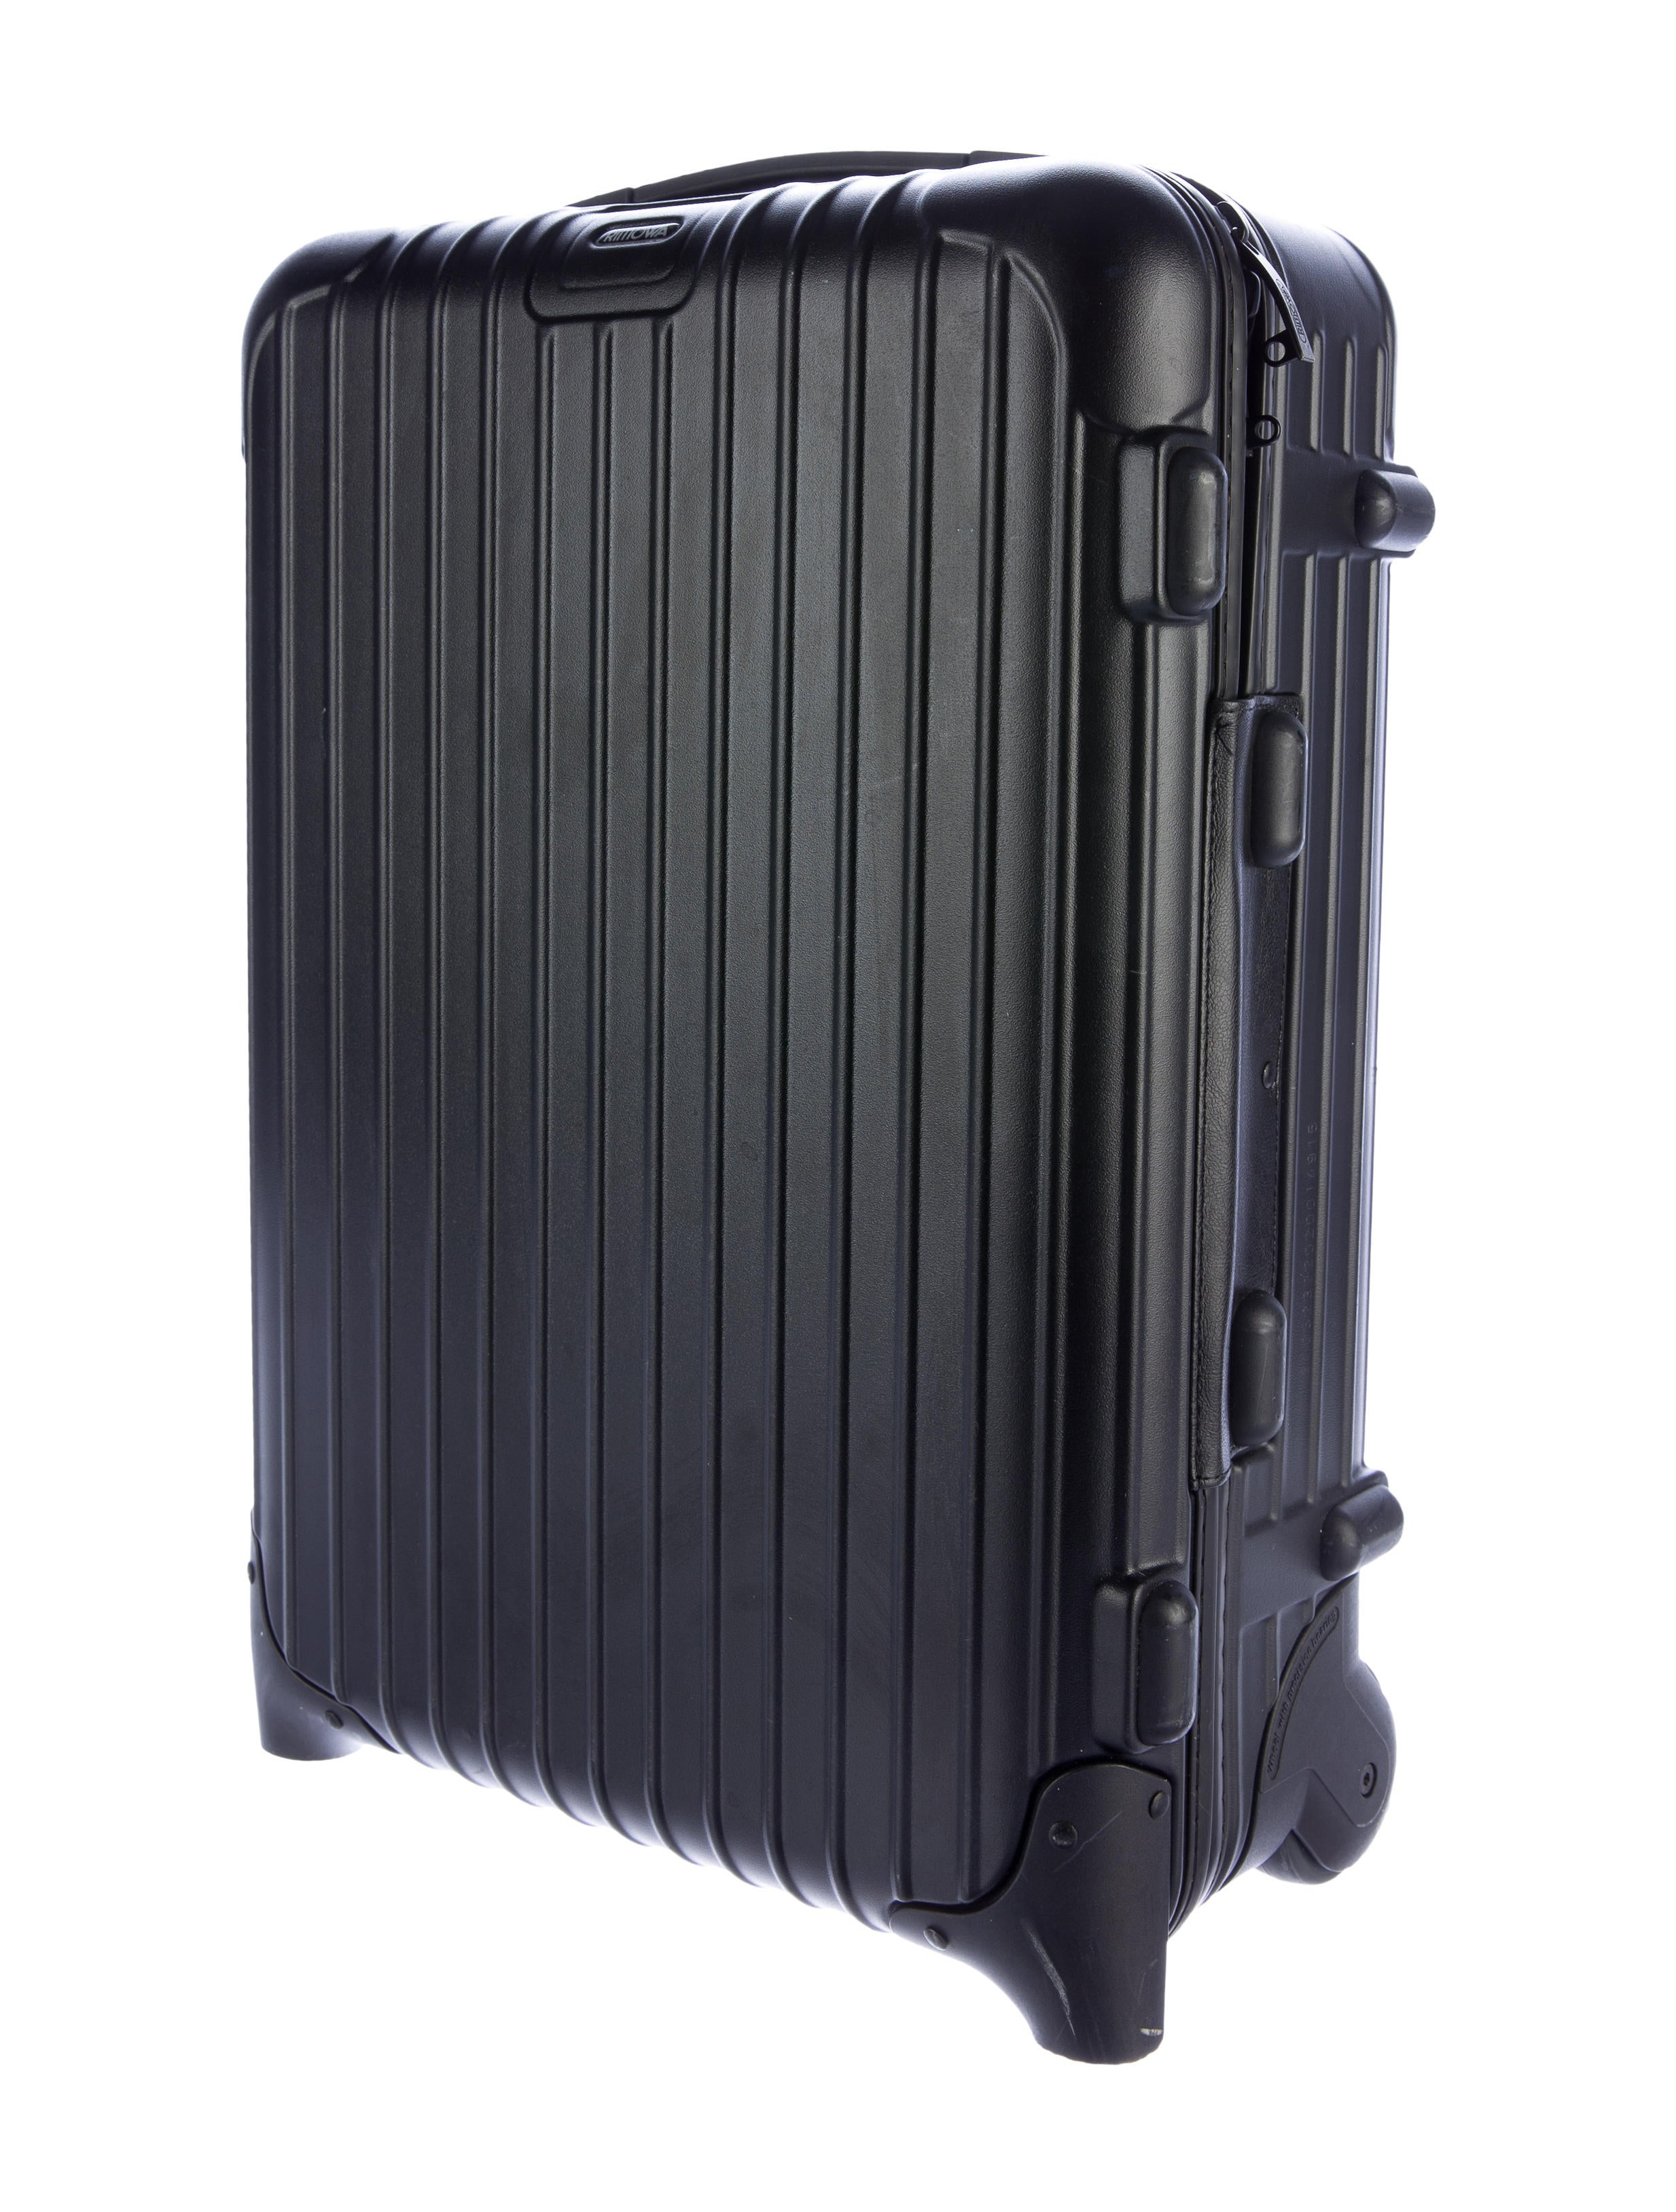 Rimowa Luggage Salsa Deluxe Cabin Trolley Luggage